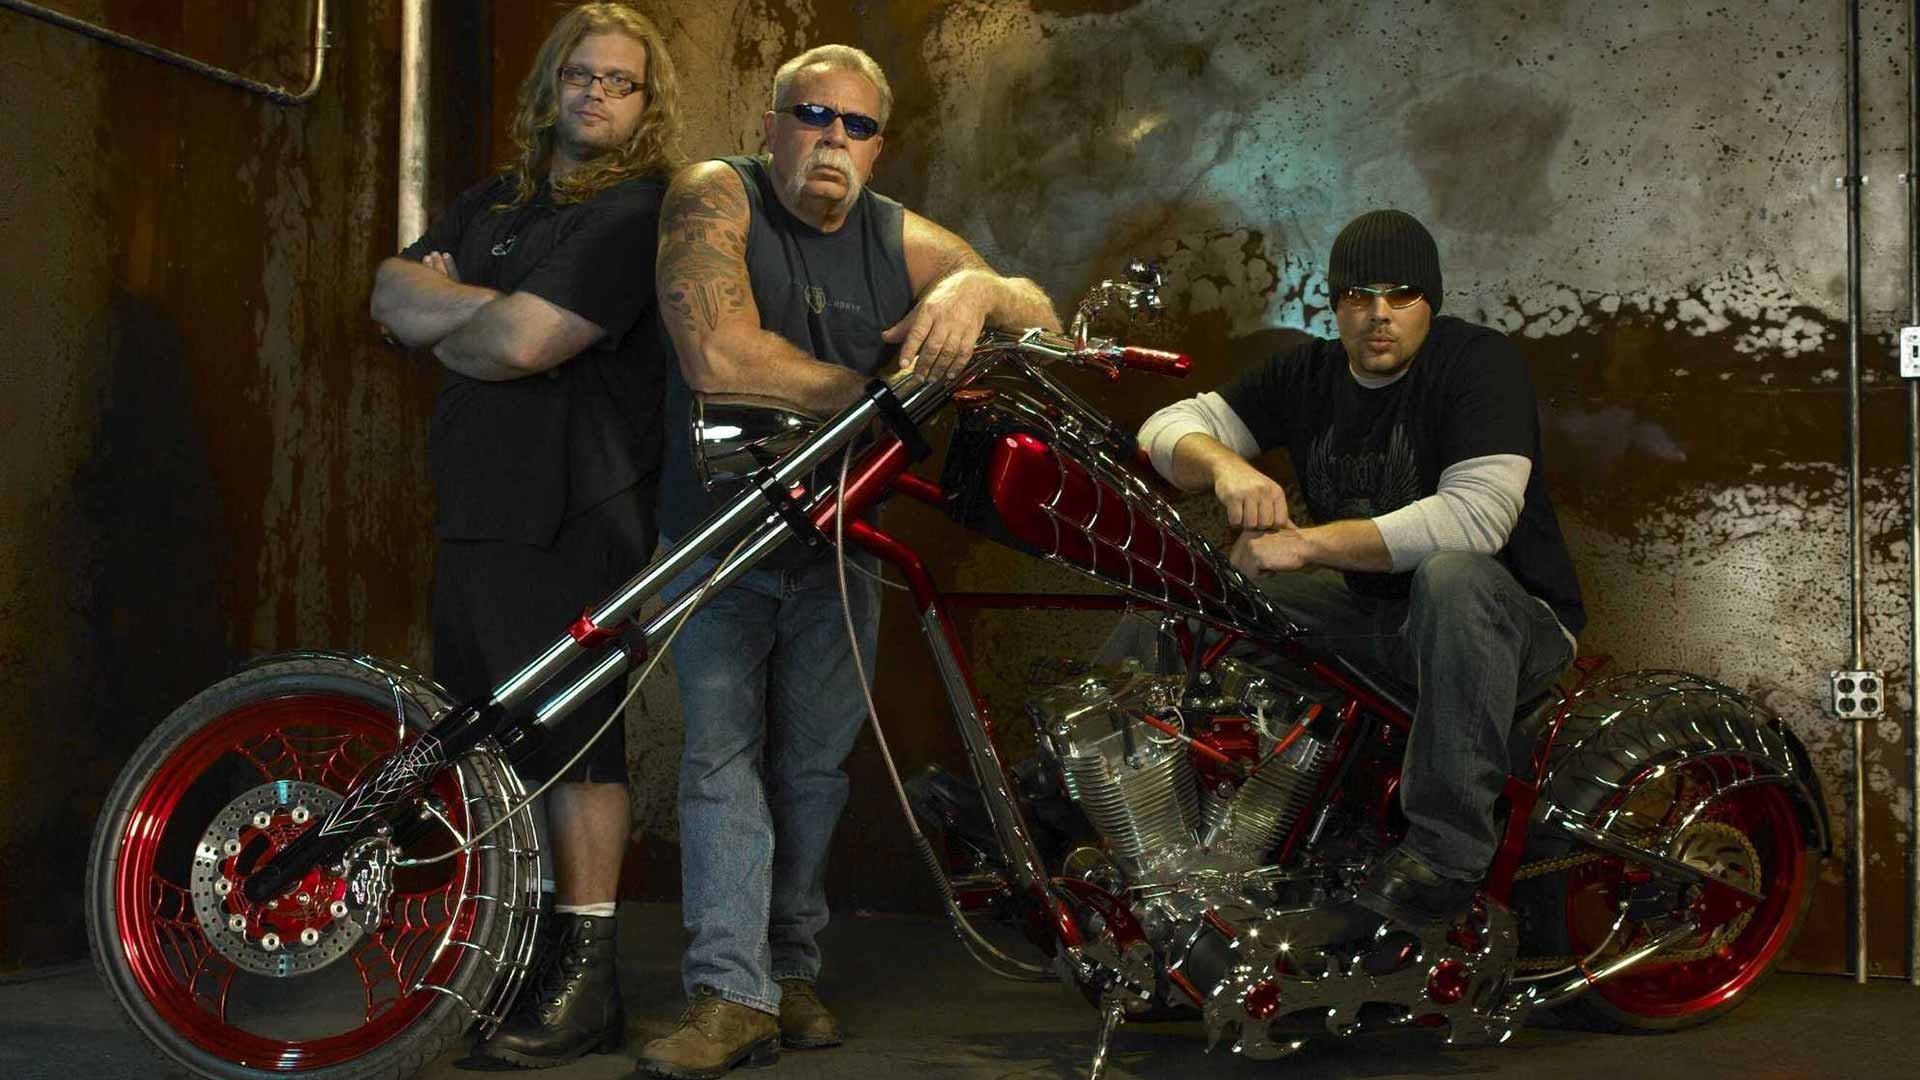 Harley Davidson Discovery Channel